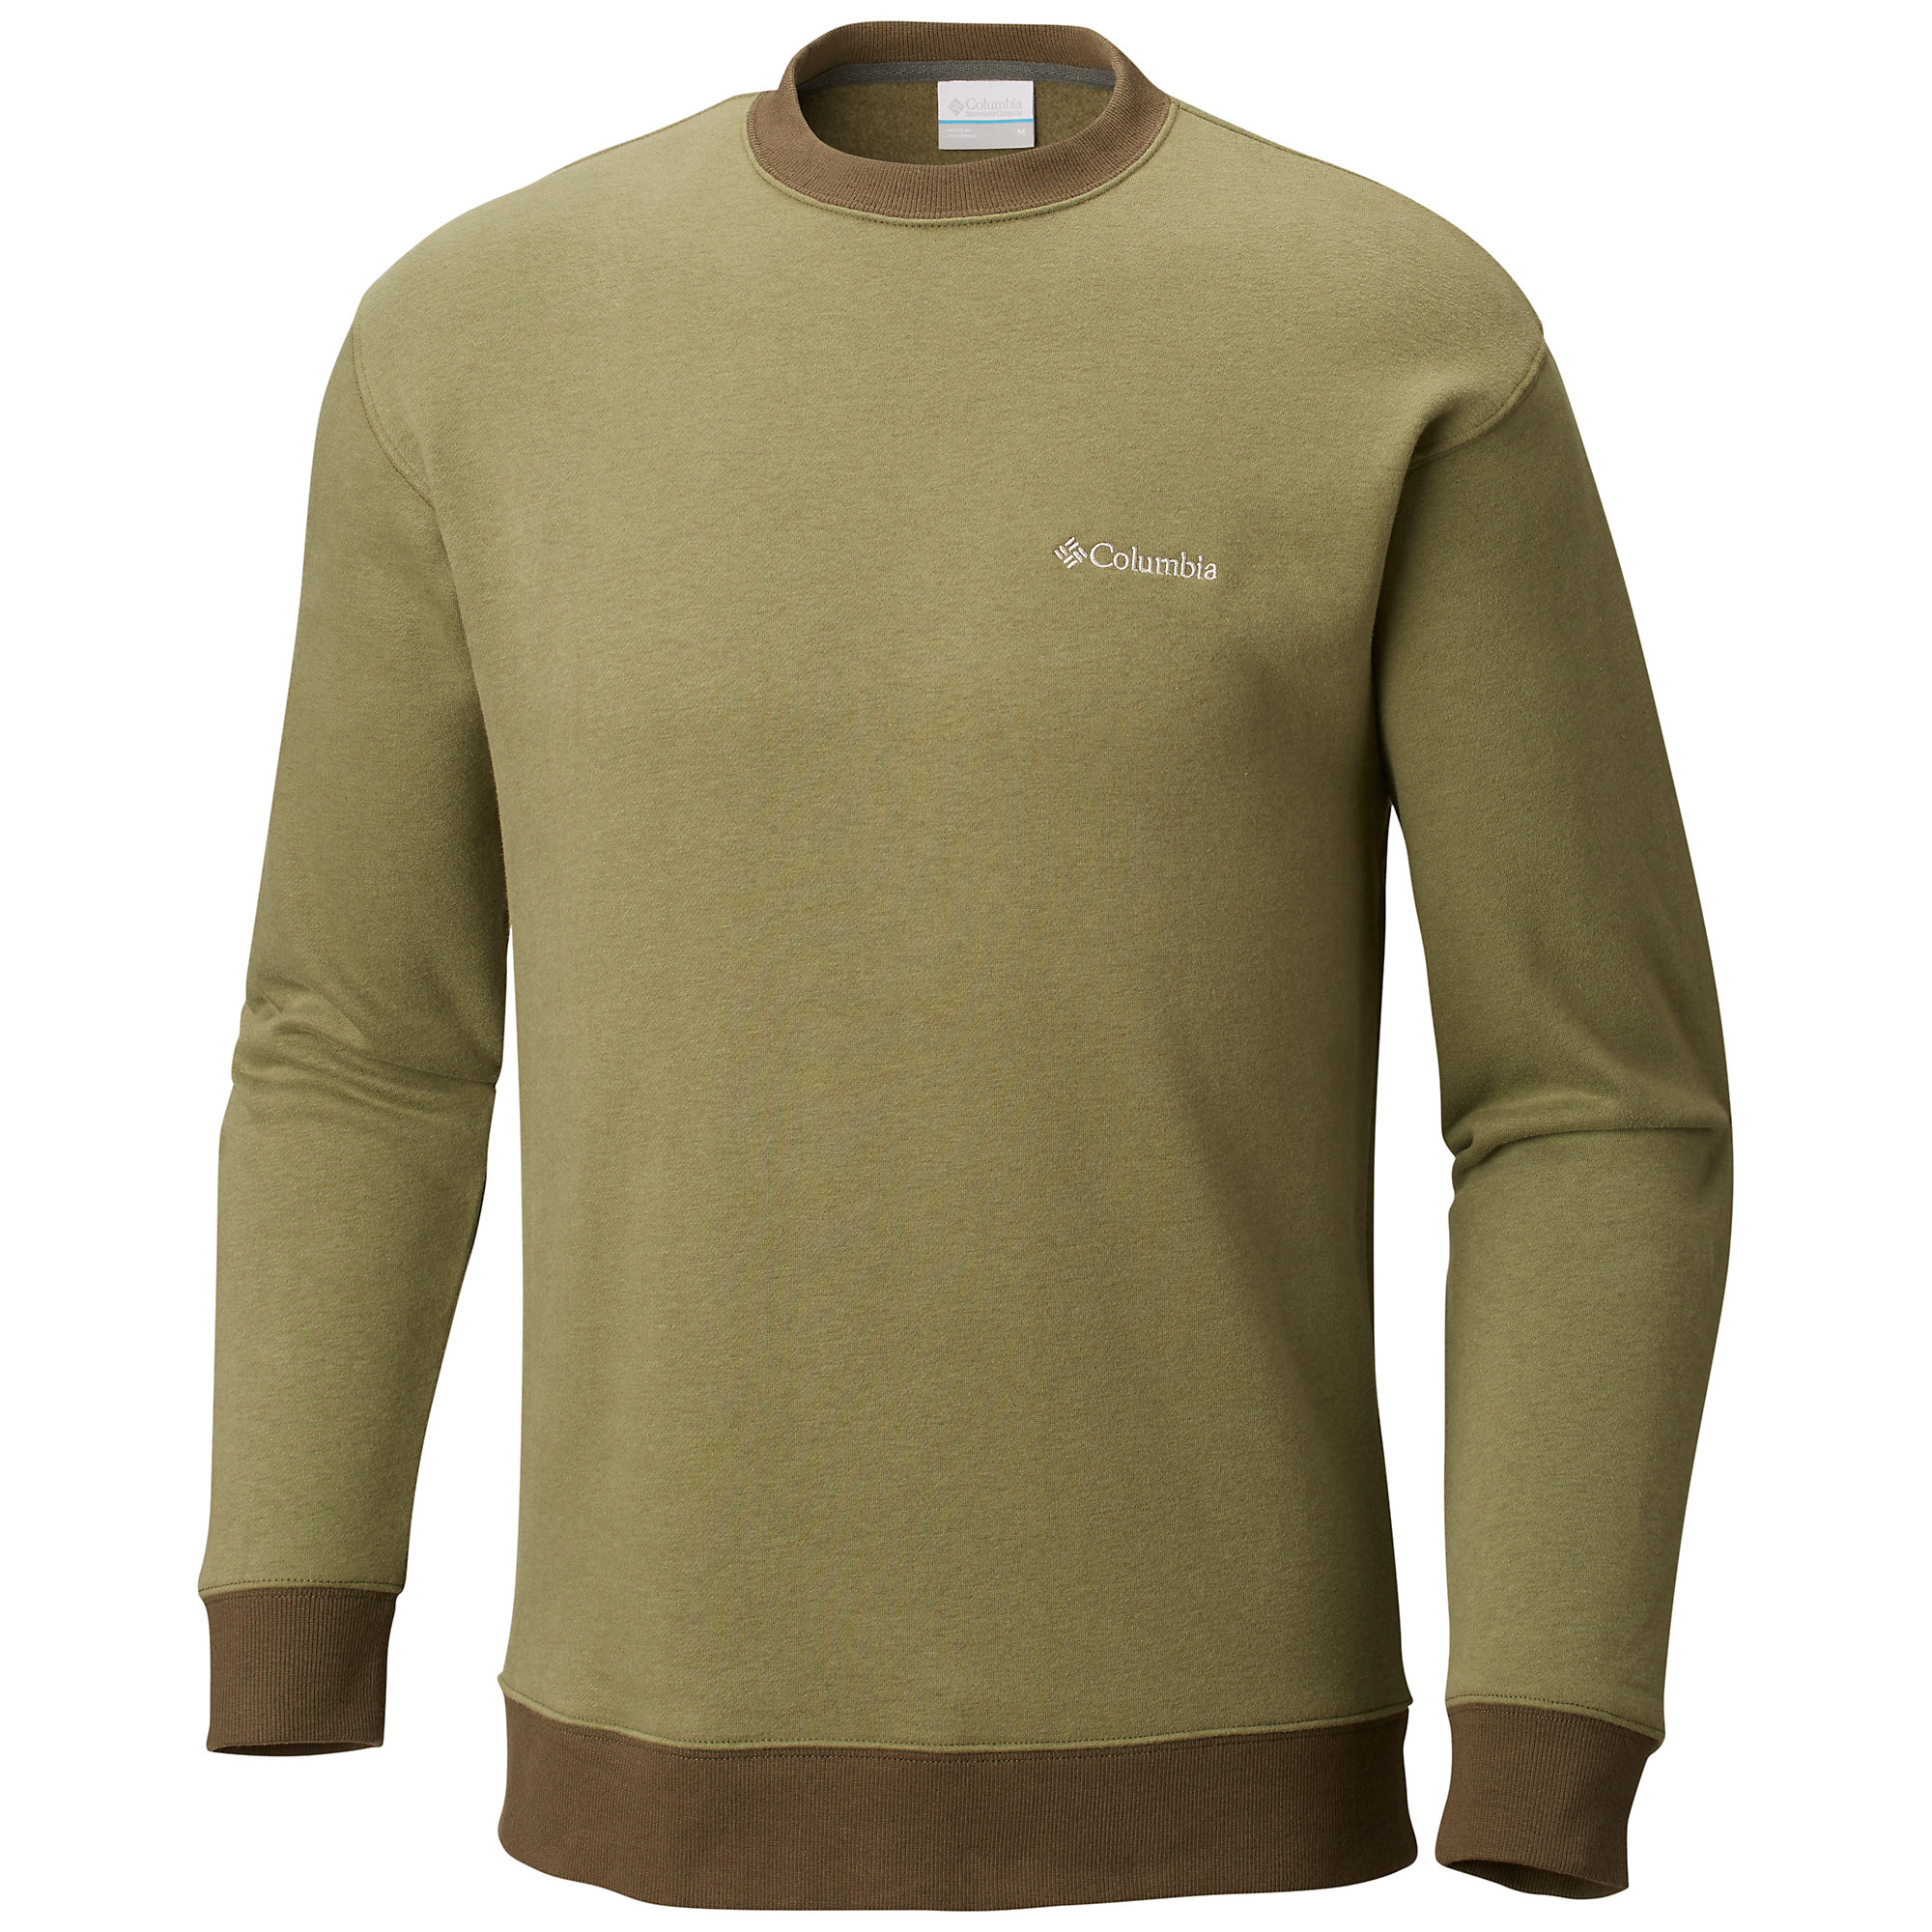 Columbia Hart Mountain II Crew Sweatshirt